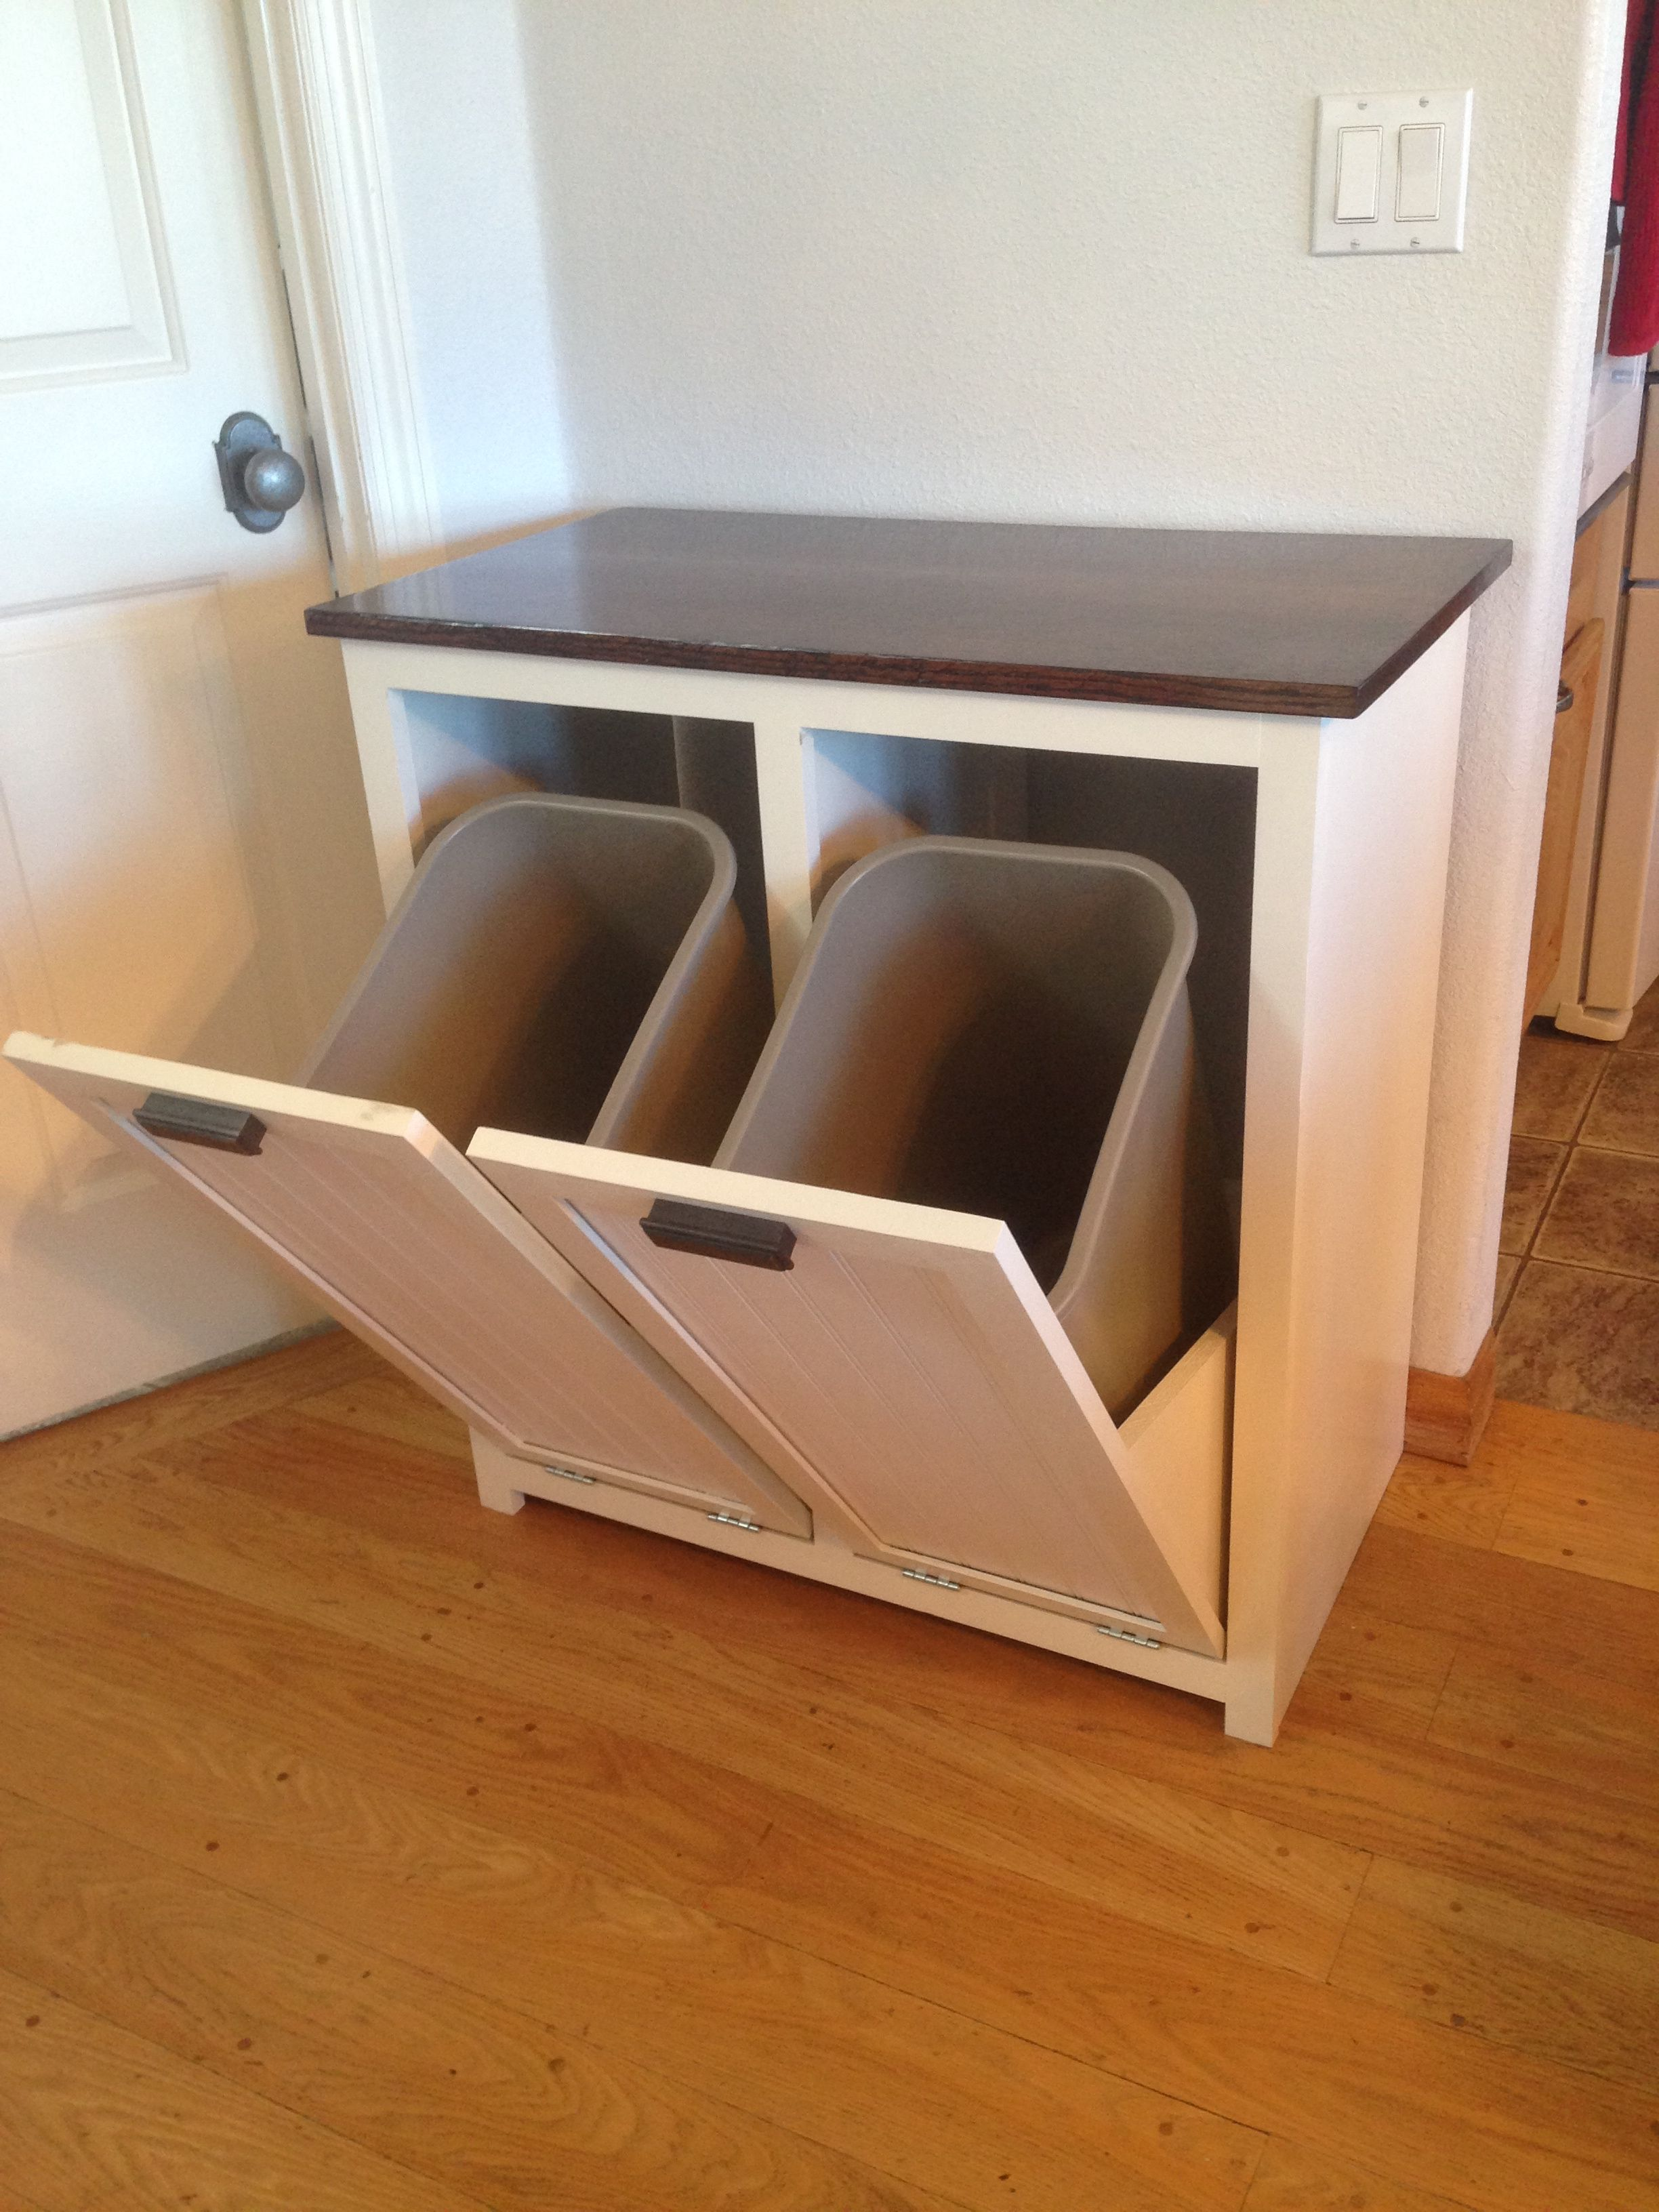 Superieur Wooden Recycling Bins Kitchen